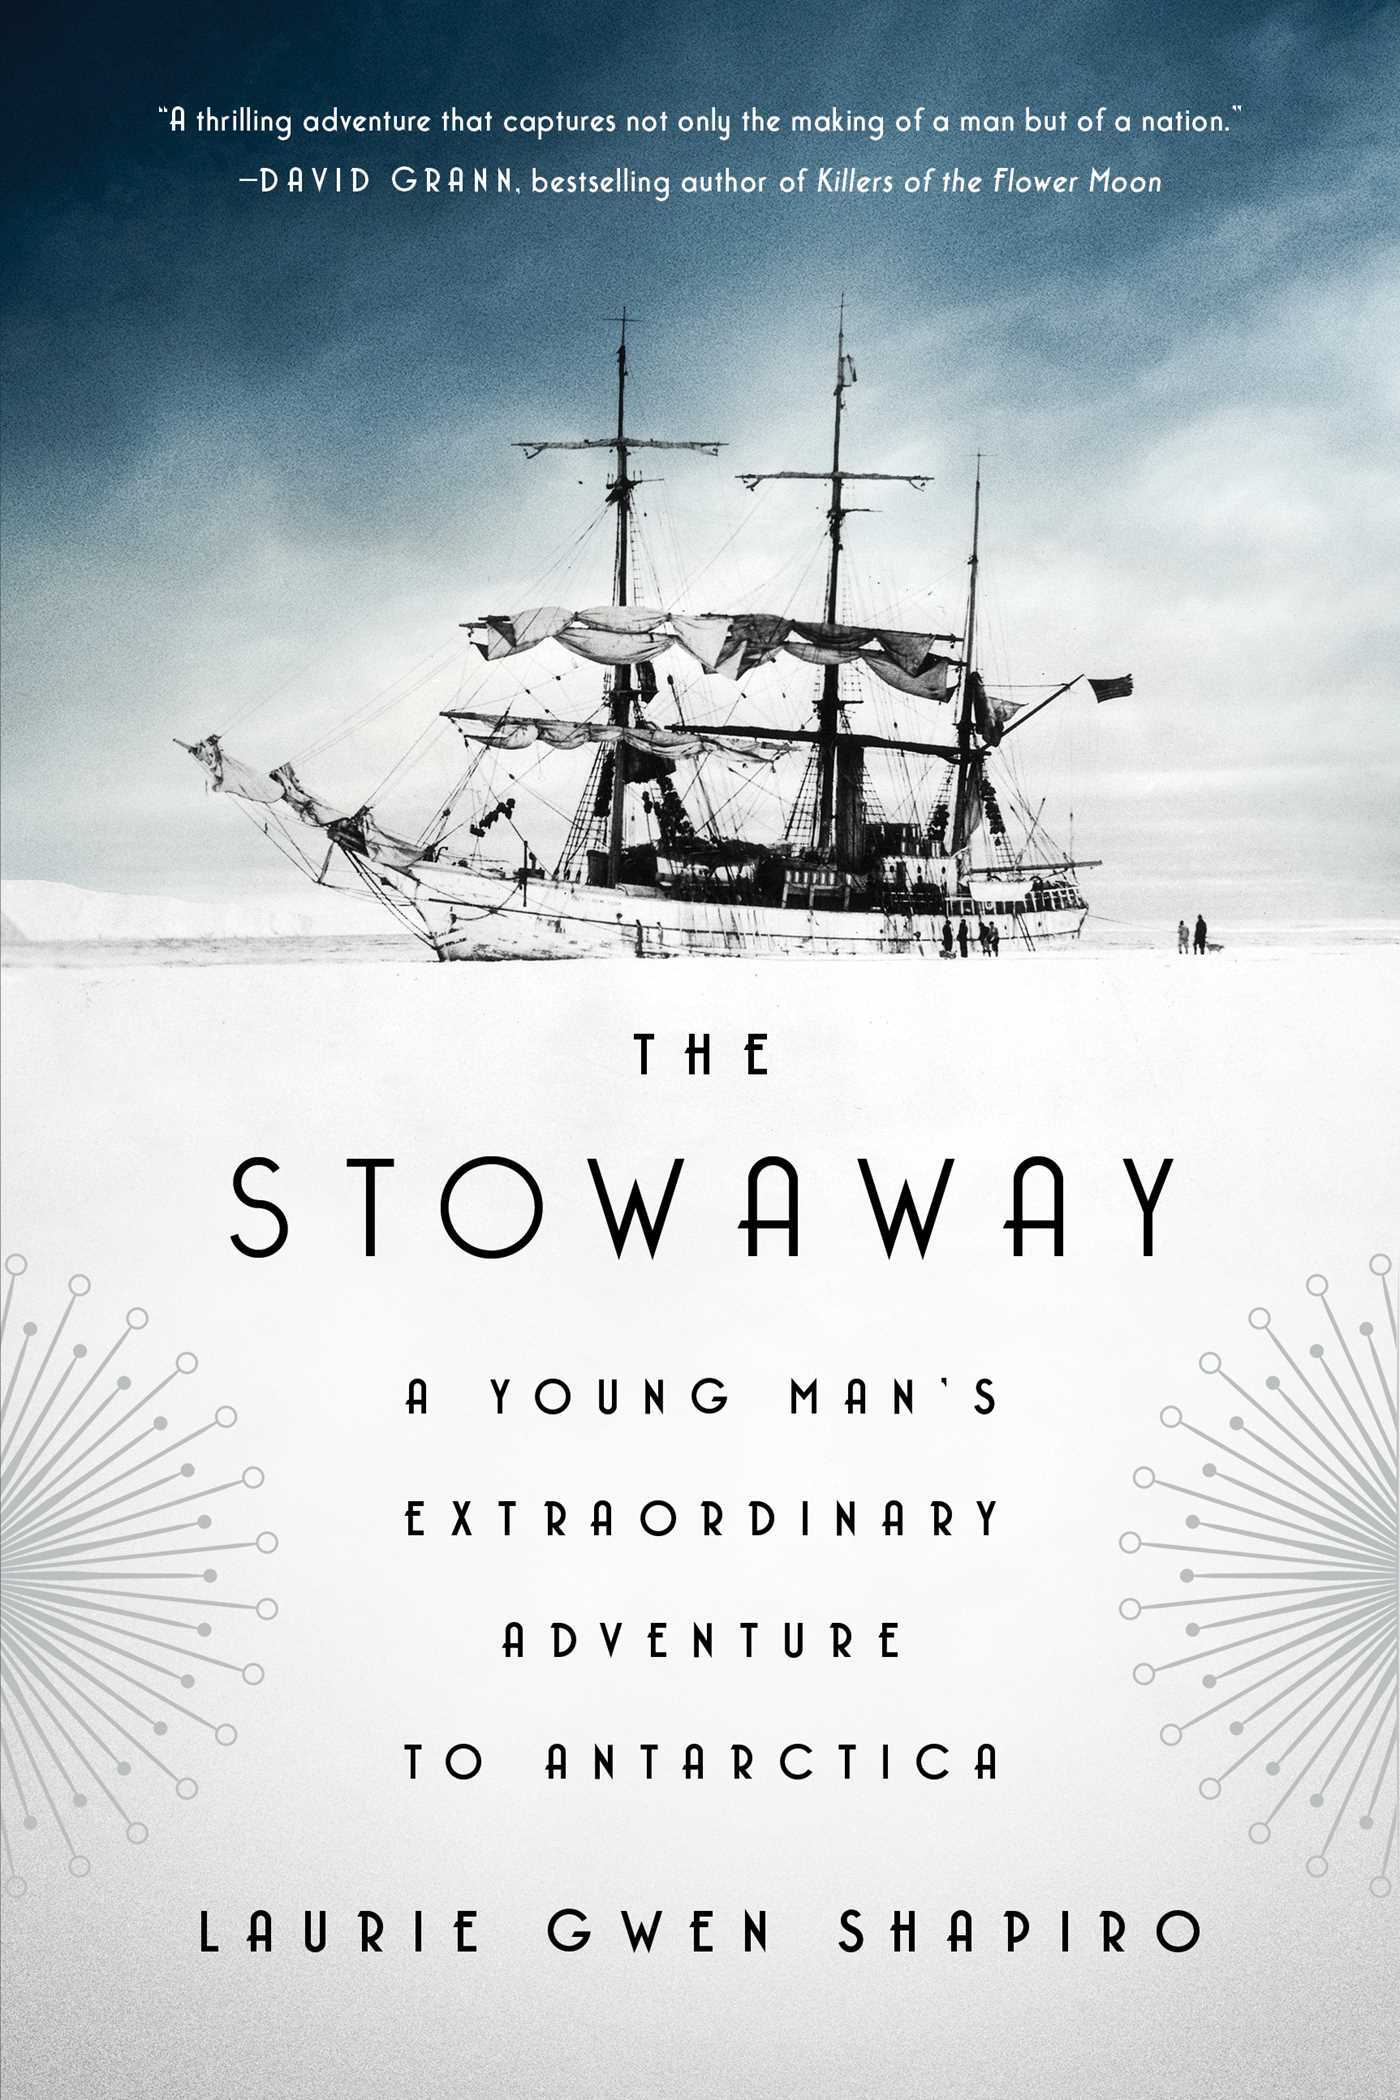 The Stowaway A Young Man's Extraordinary Adventure to Antarctica